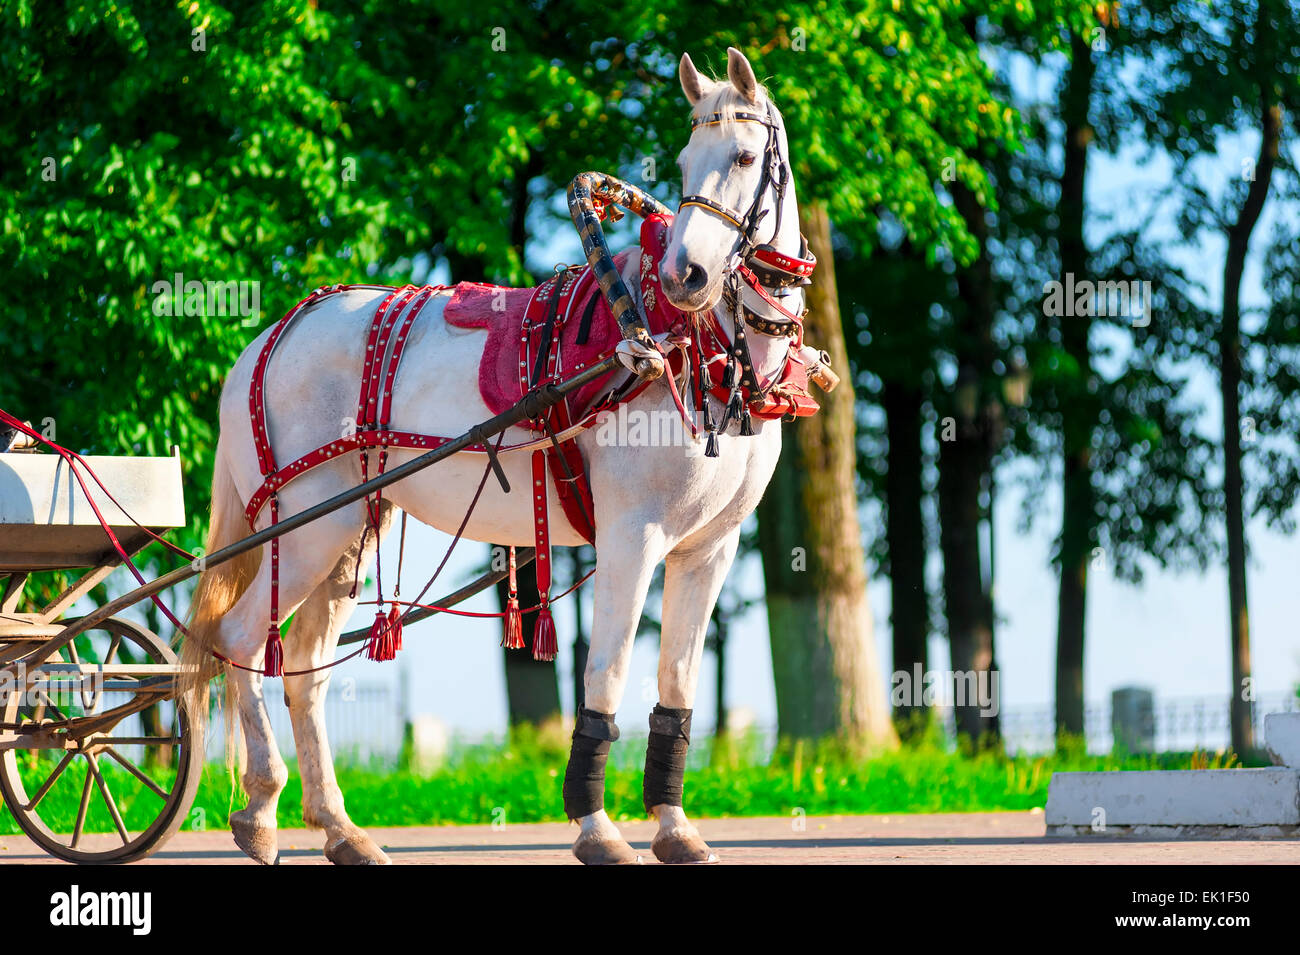 white horse harnessed, stands on the sunny street - Stock Image